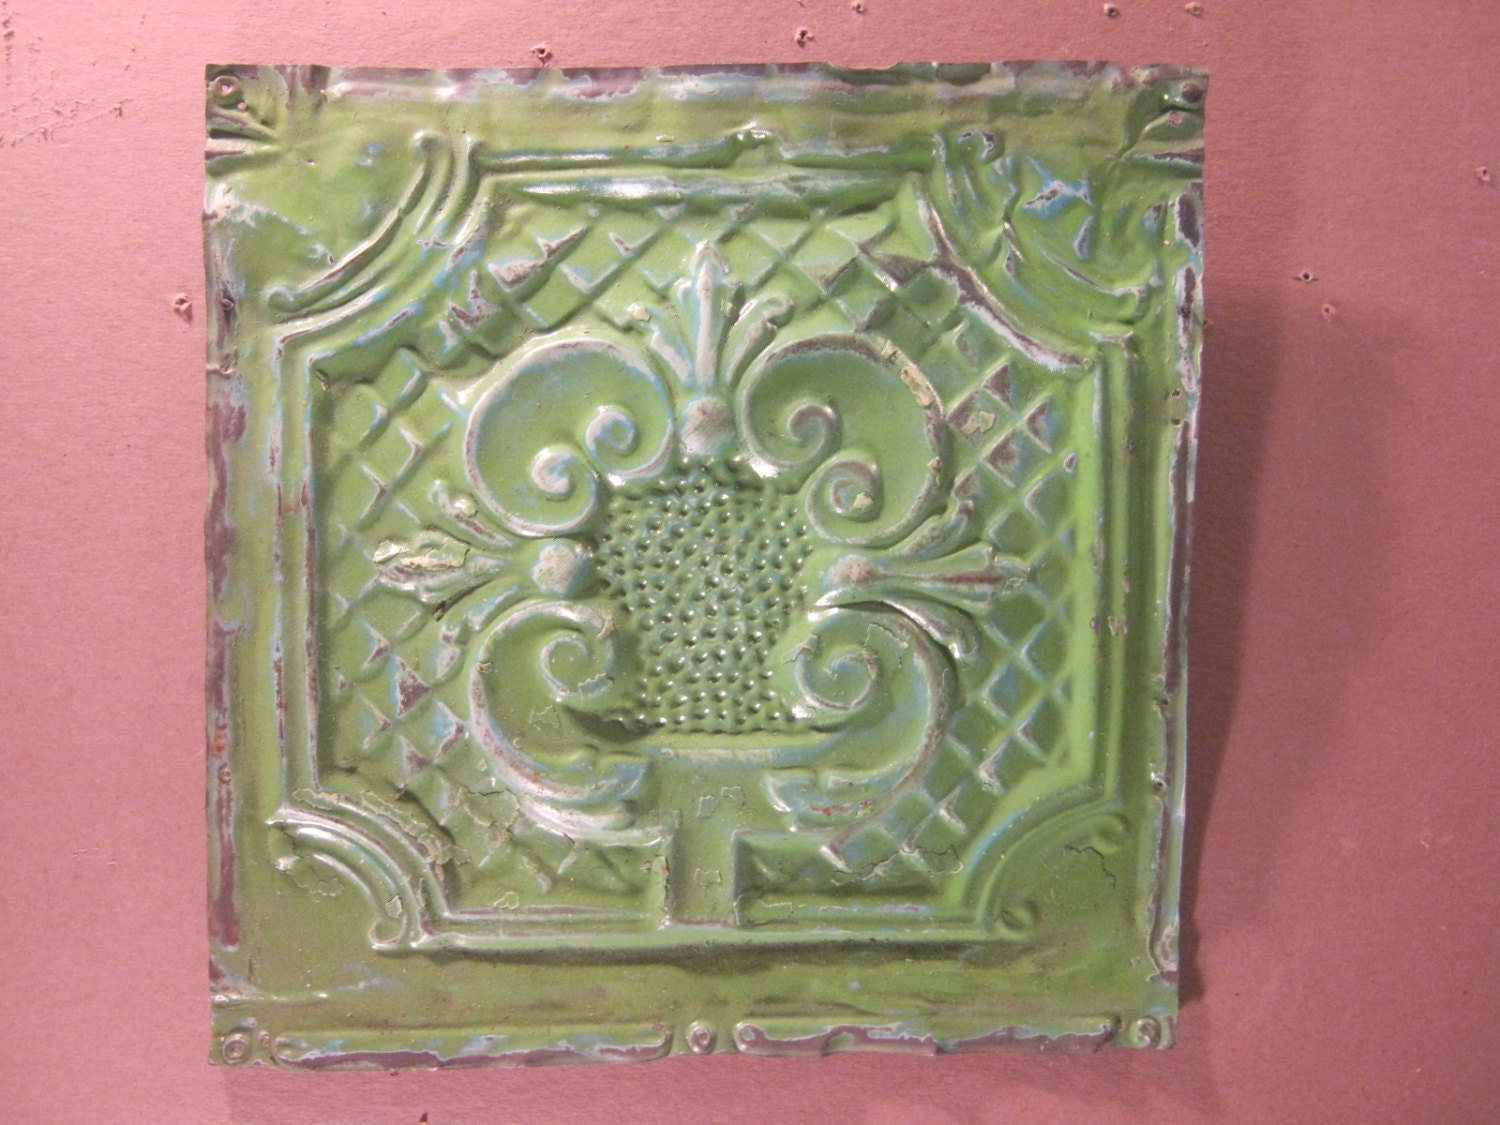 Antique Tin Ceiling Tile 12x12 Grass Green Metal Art Tile With